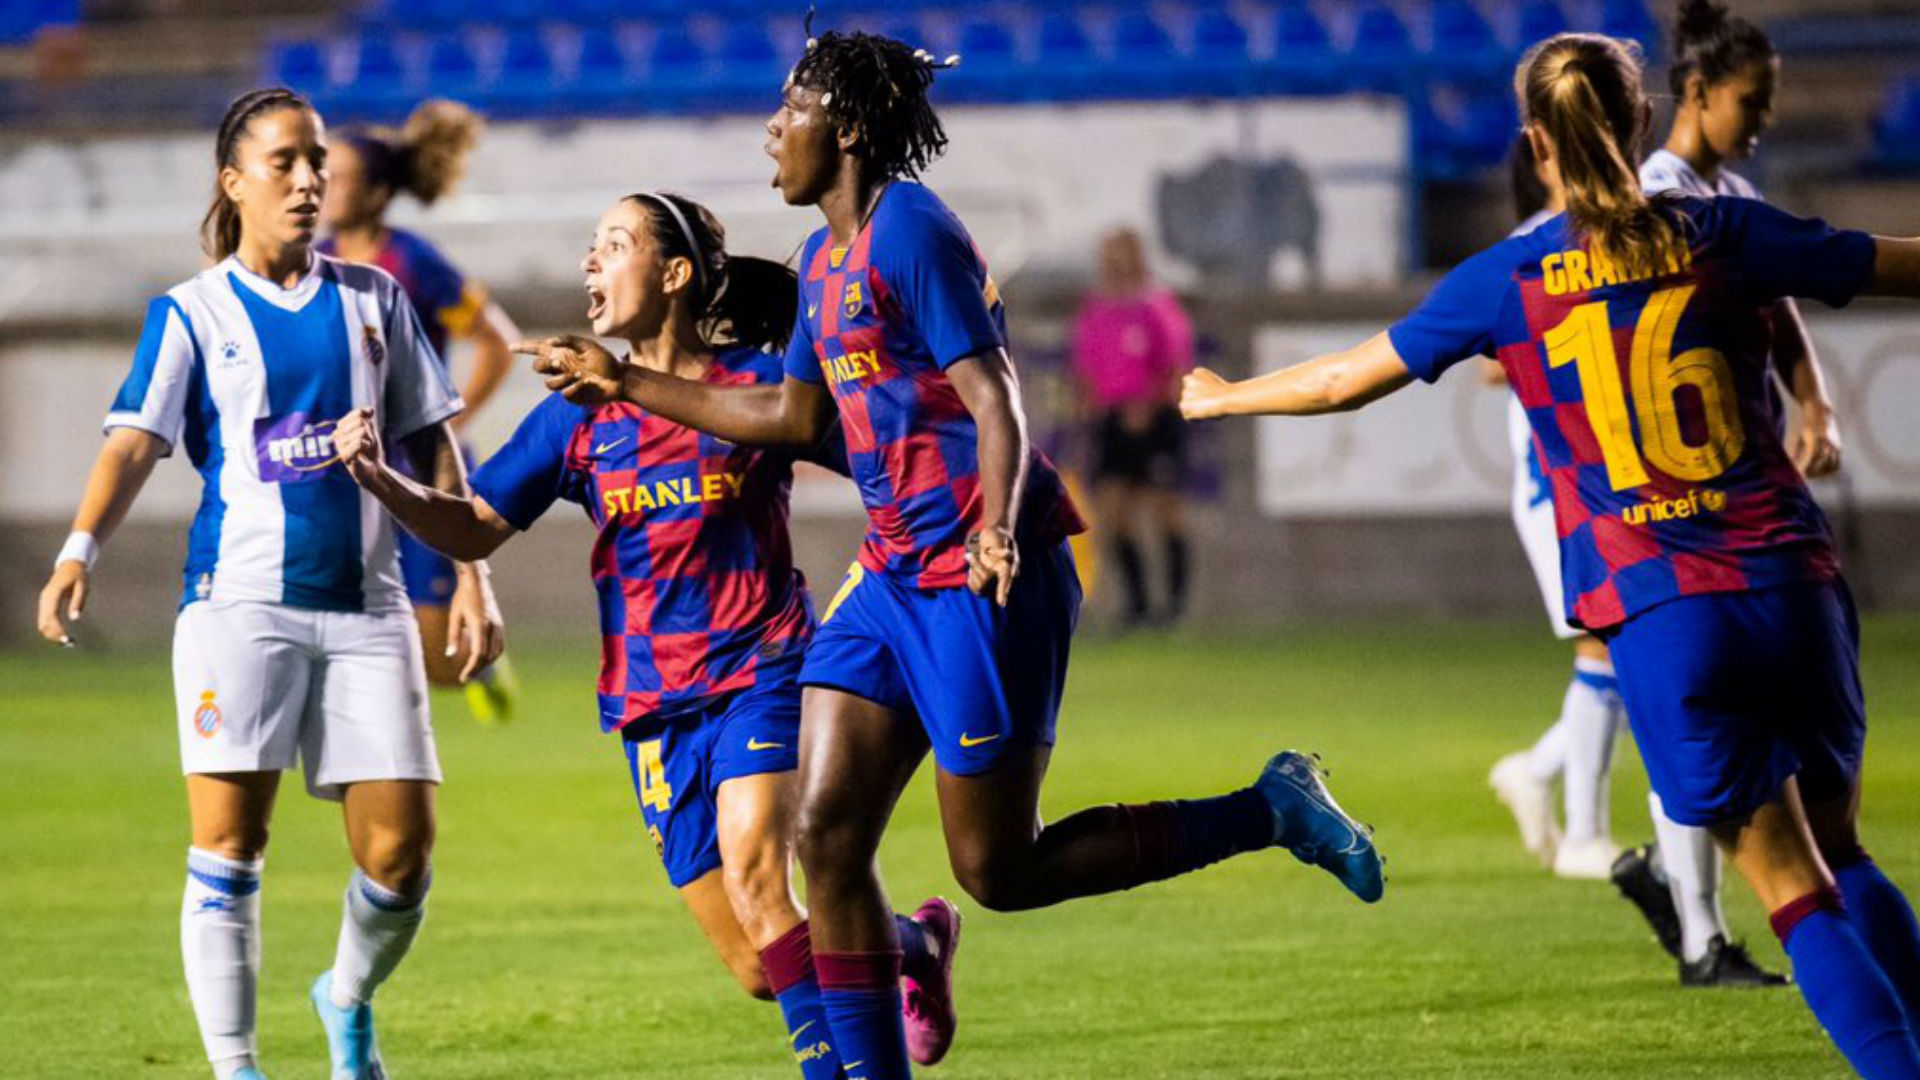 Oshoala breaks Primera Iberdrola duck with brace as Barcelona thump Atletico Madrid